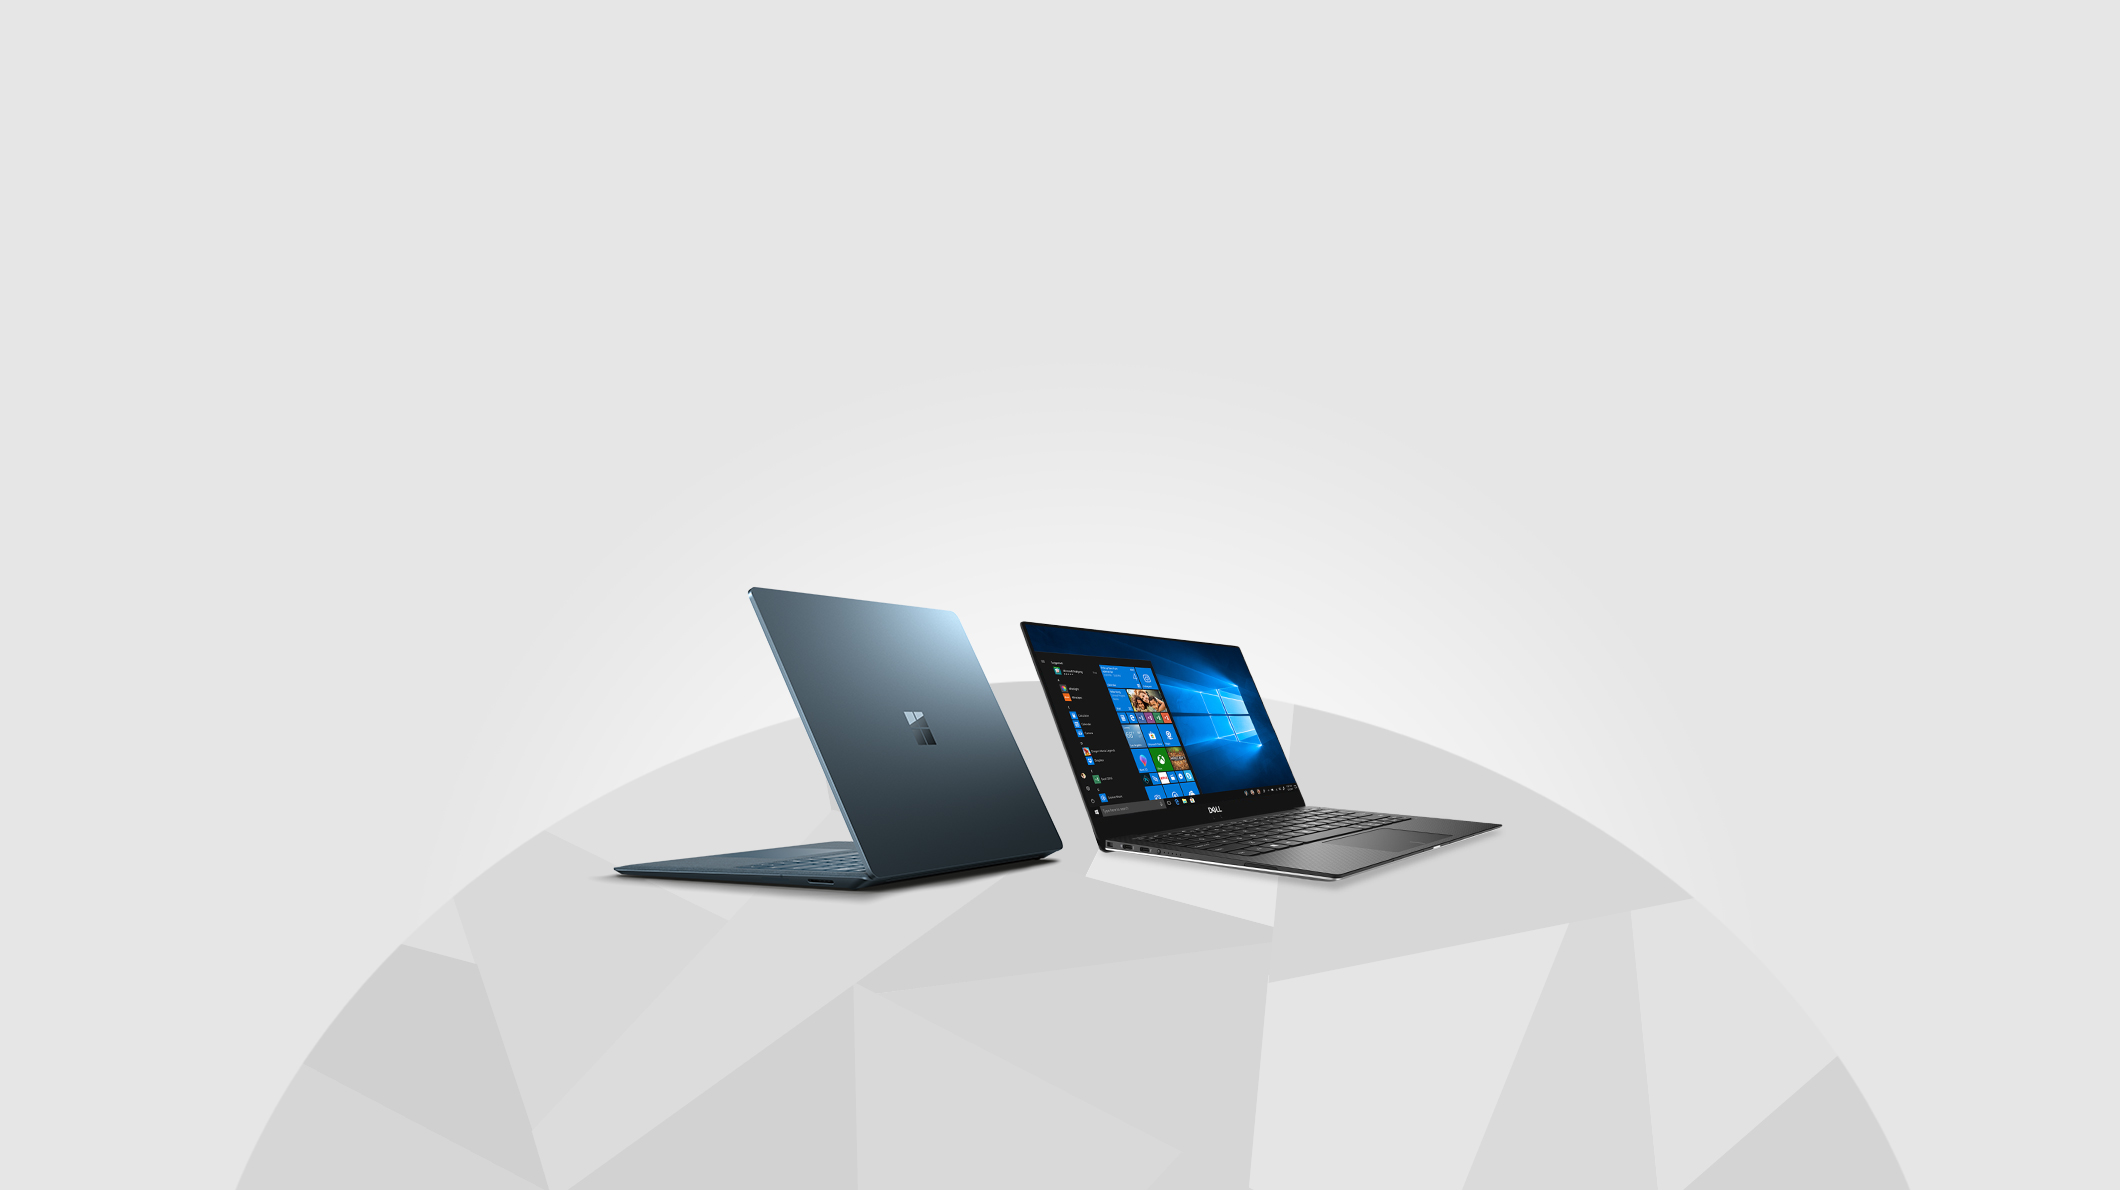 A Cobalt Surface Laptop 2 and a Dell XPS 13